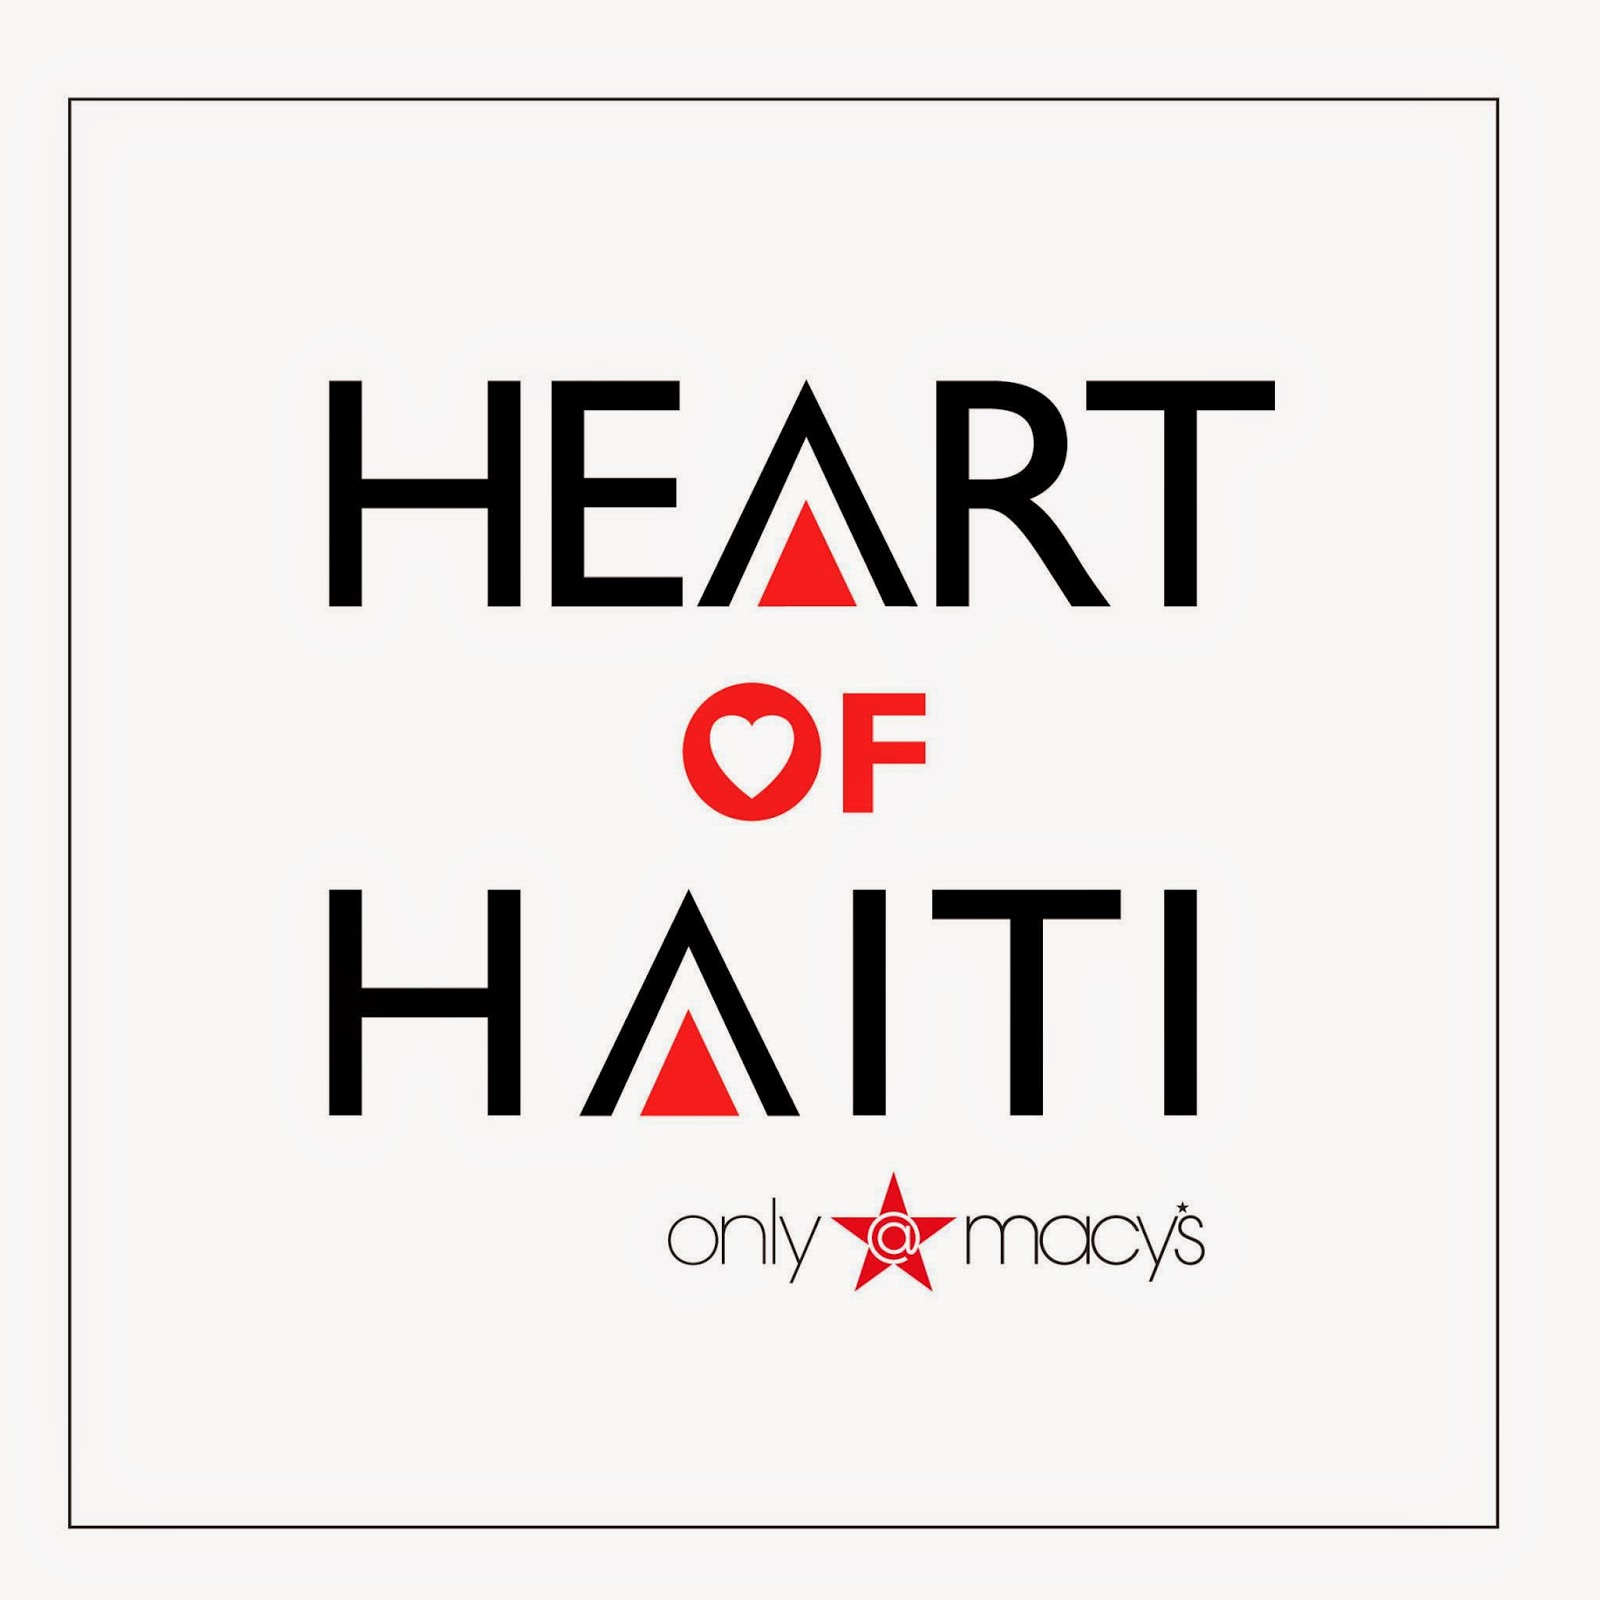 causes, support, charity, contribute, Macy's, Haiti